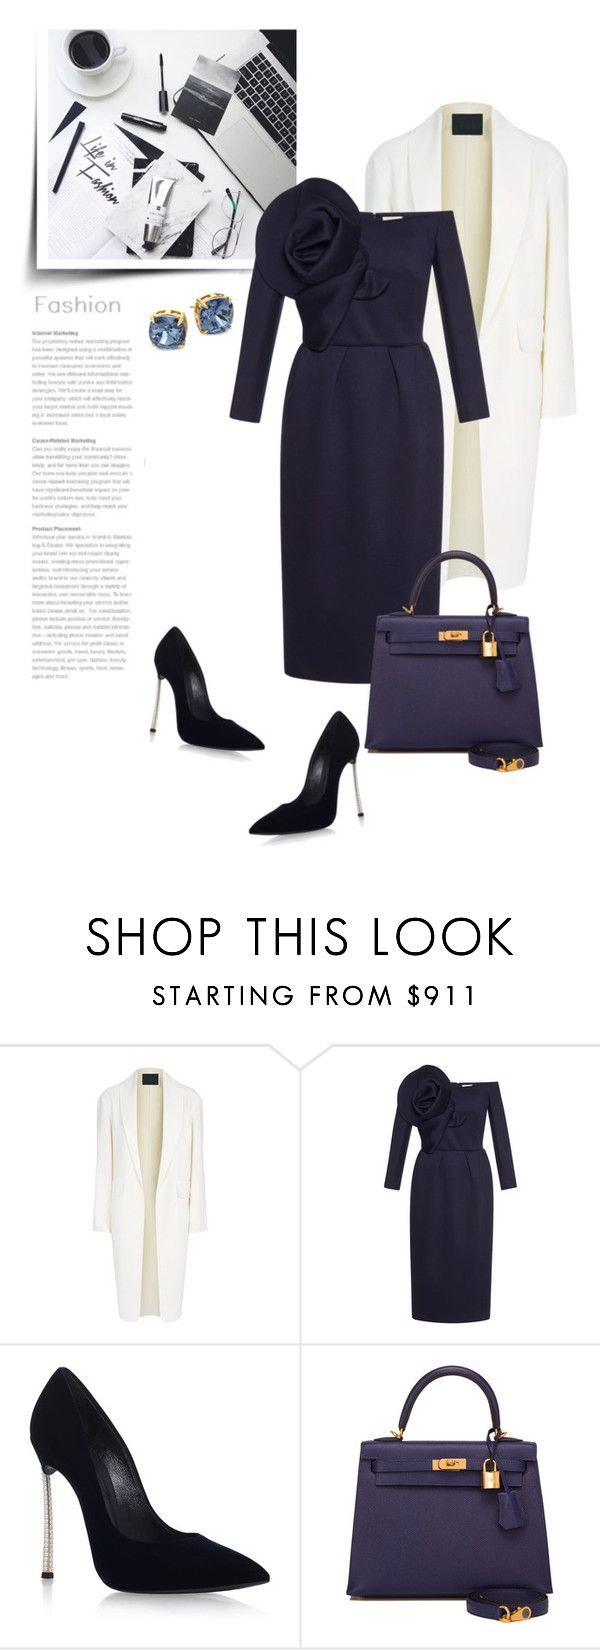 """""""Work In Style"""" by bliznec ❤ liked on Polyvore featuring Alexander Wang, Delpozo, Casadei, Hermès and Tory Burch"""